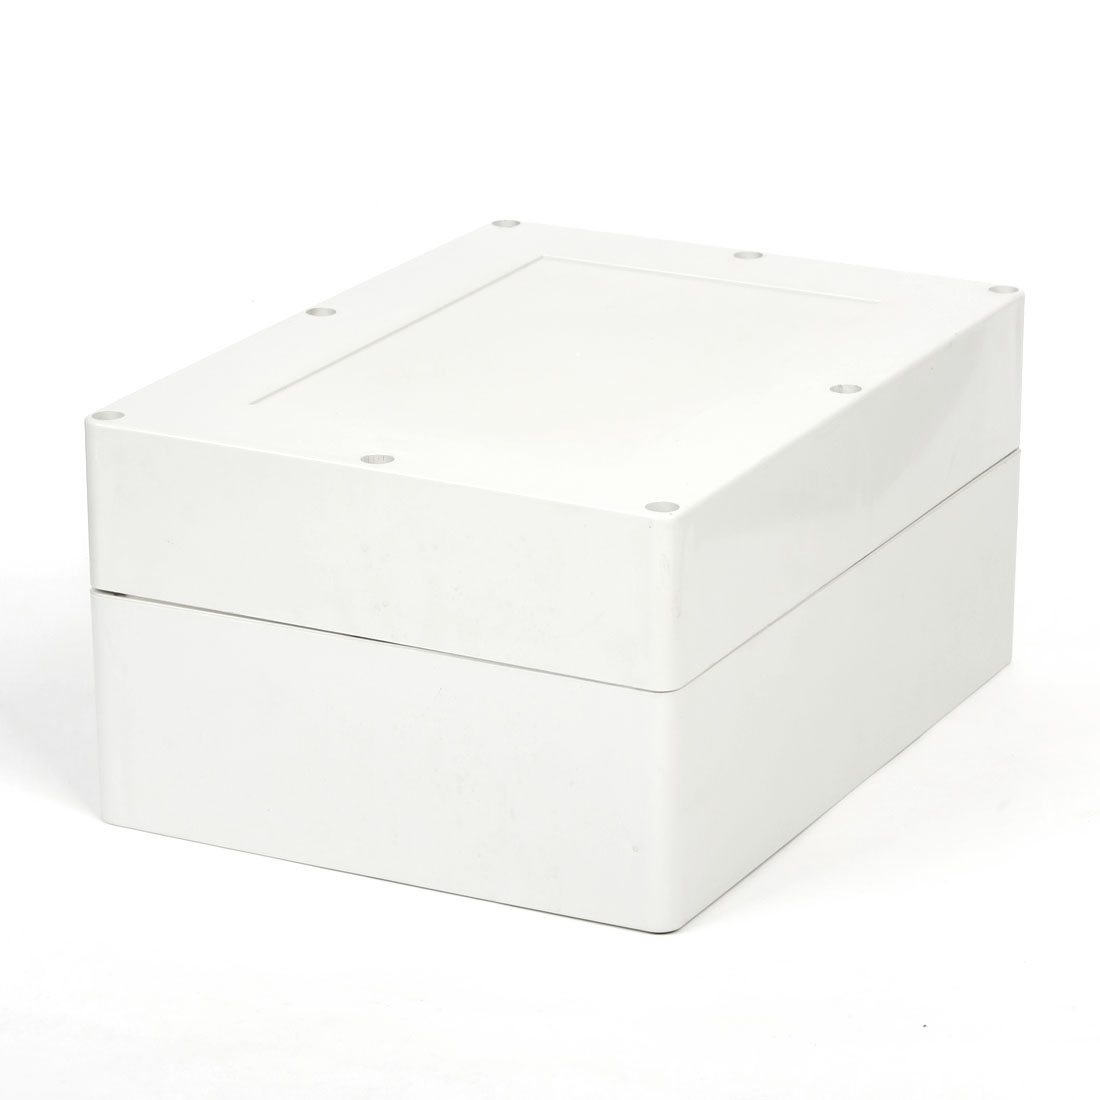 320mmx240mmx155mm-Waterproof-Sealed-Enclosure-Case-DIY-Junction-Box